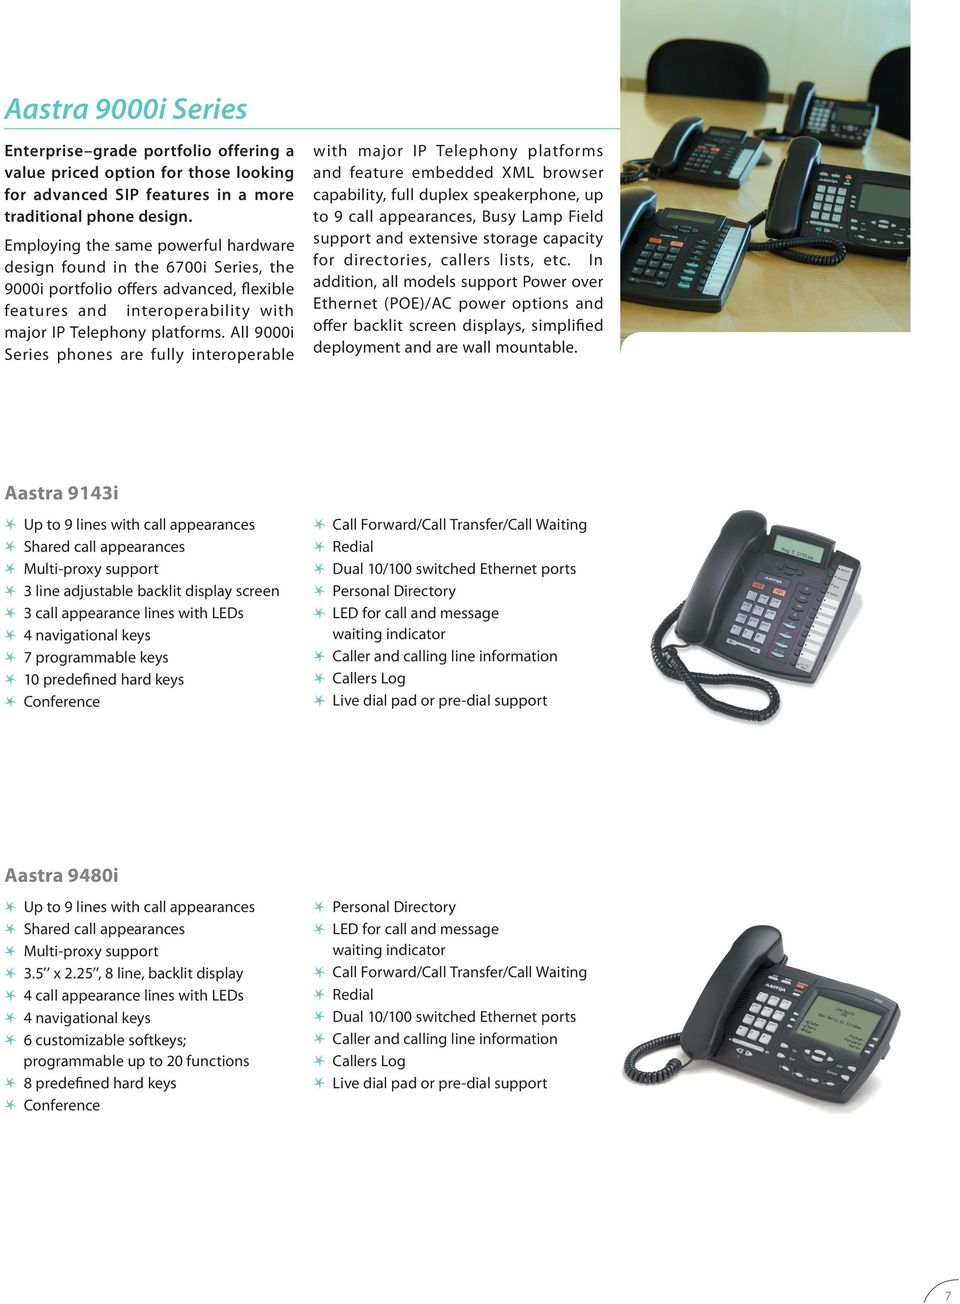 All 9000i Series phones are fully interoperable with major IP Telephony platforms and feature embedded XML browser capability, full duplex speakerphone, up to 9 call appearances, Busy Lamp Field